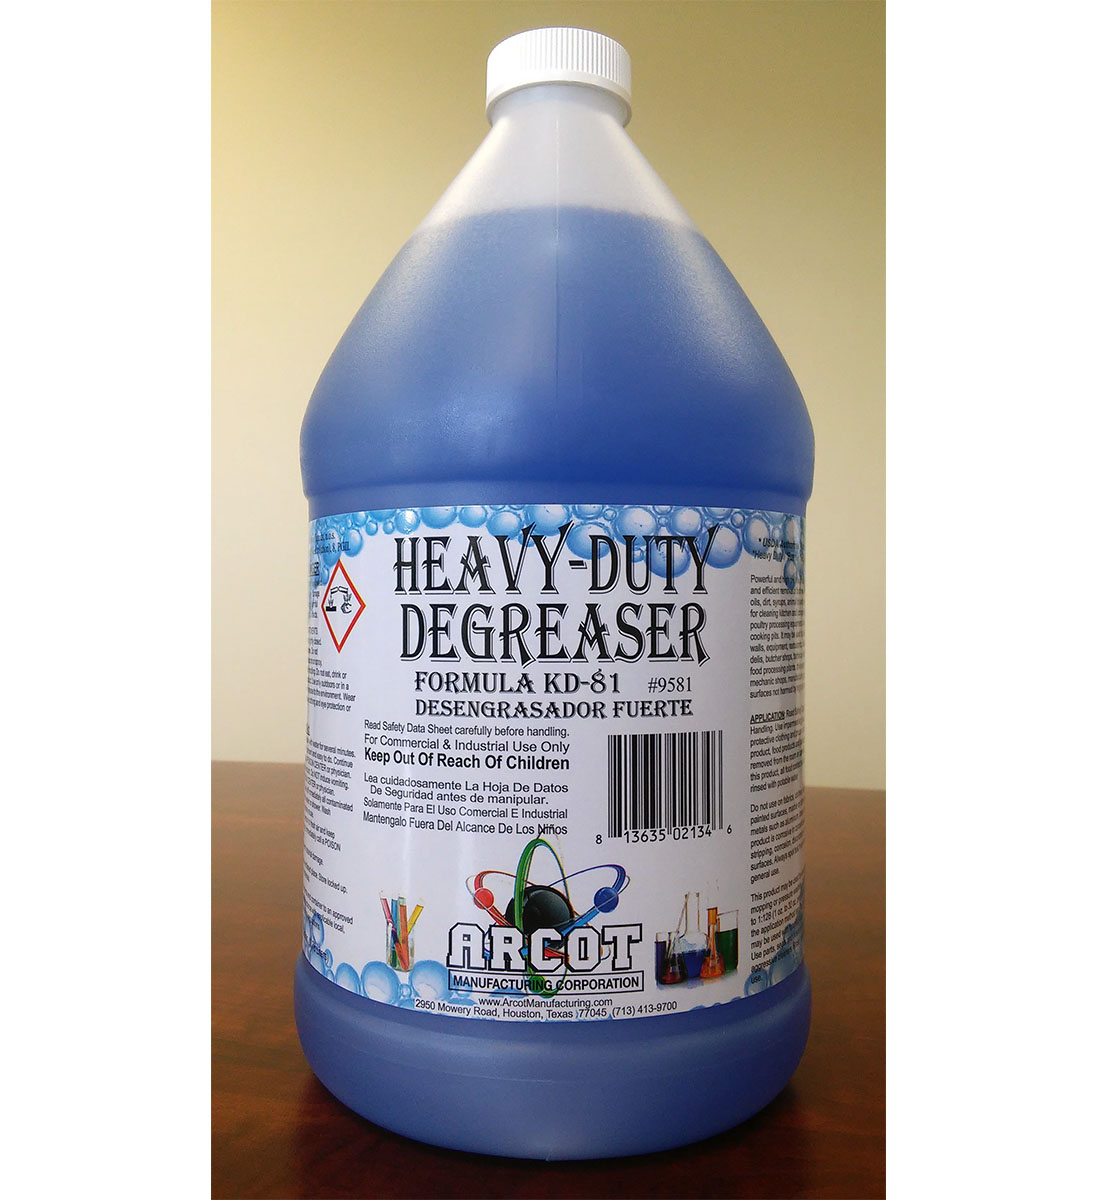 Heavy-Duty Degreaser Formula KD-81